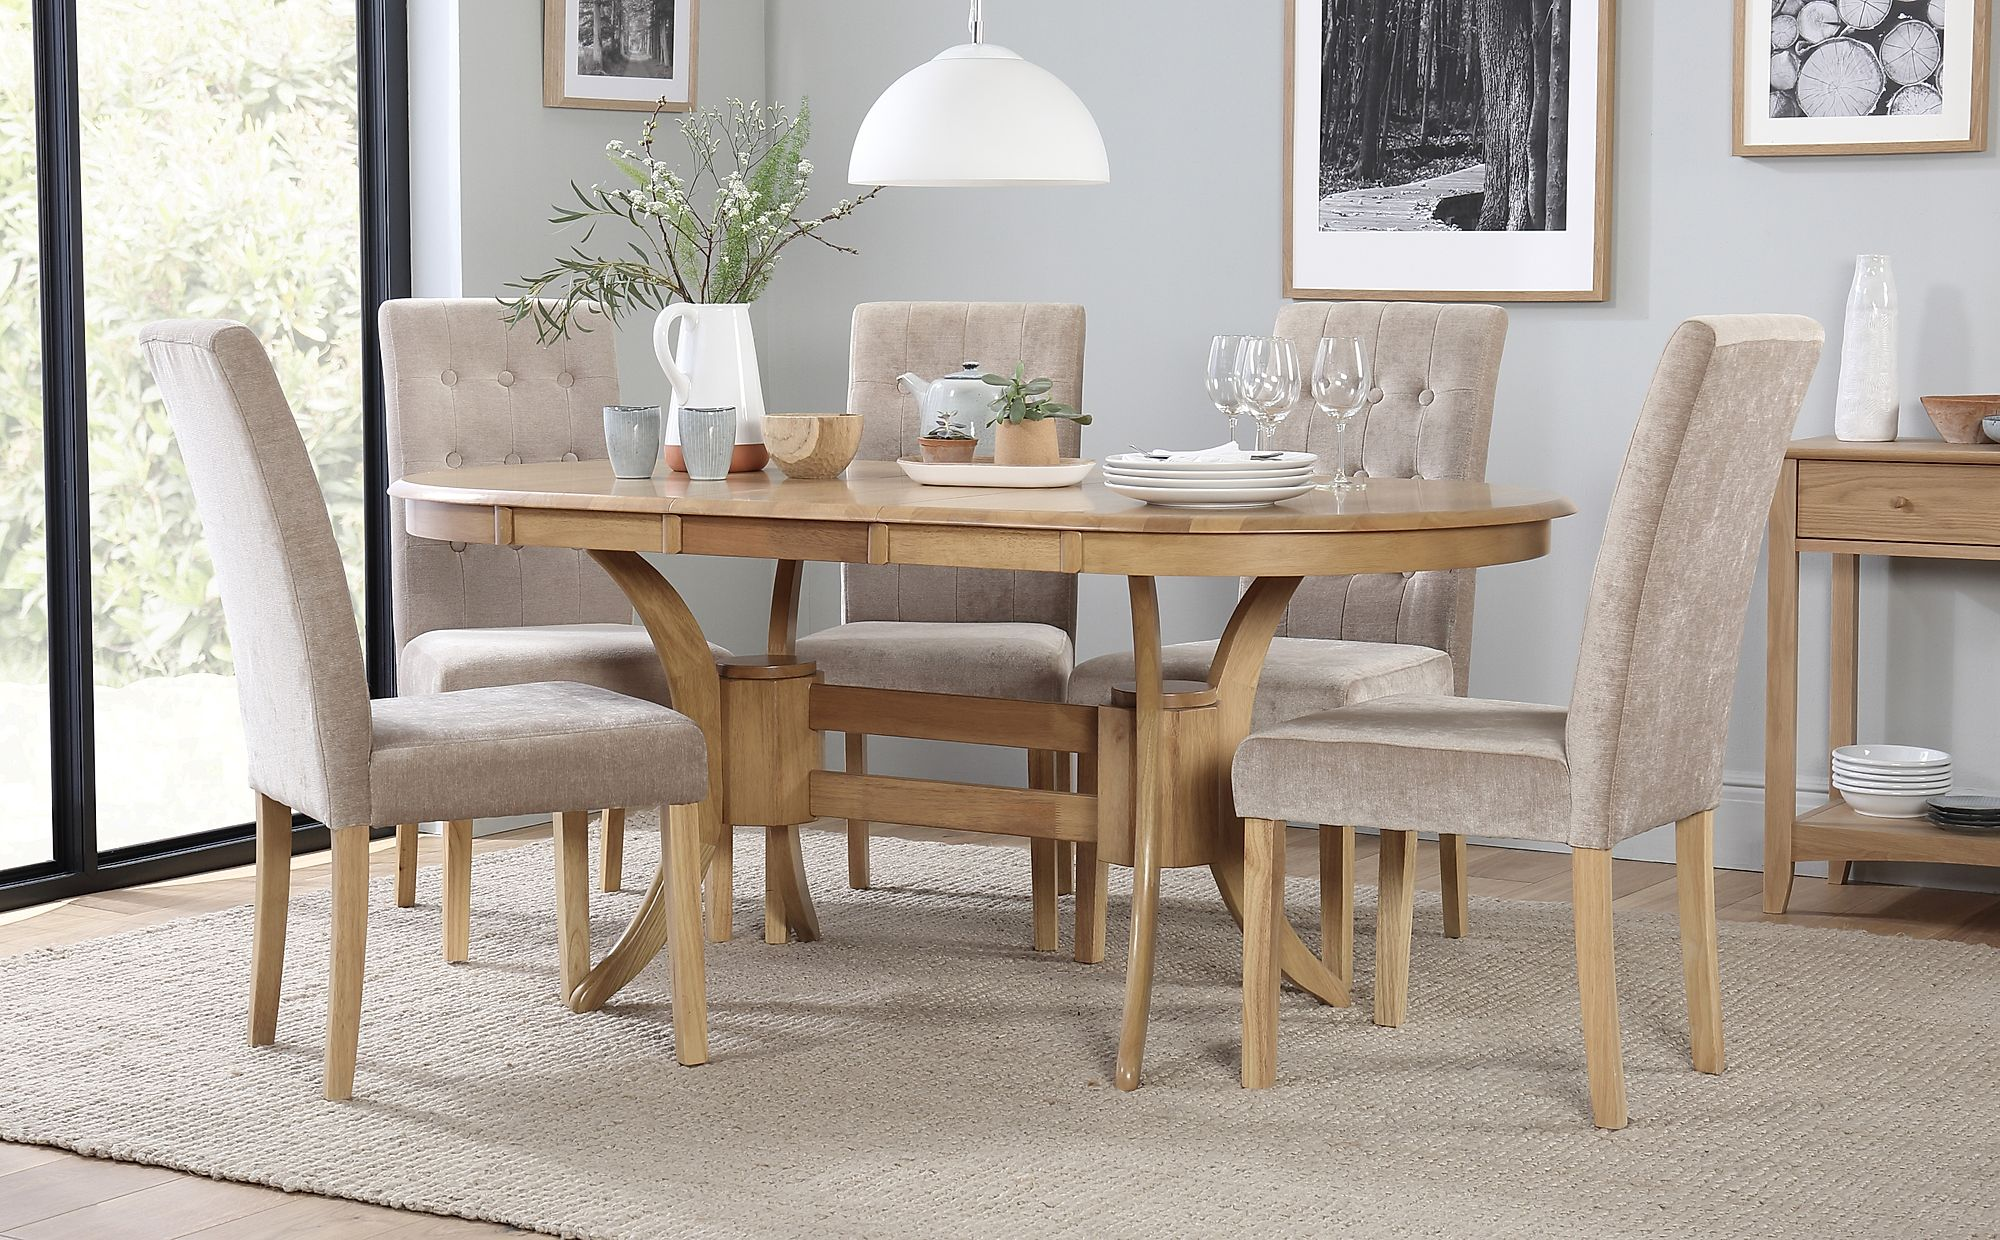 Townhouse Oval Oak Extending Dining Table With 6 Regent Oatmeal Chairs